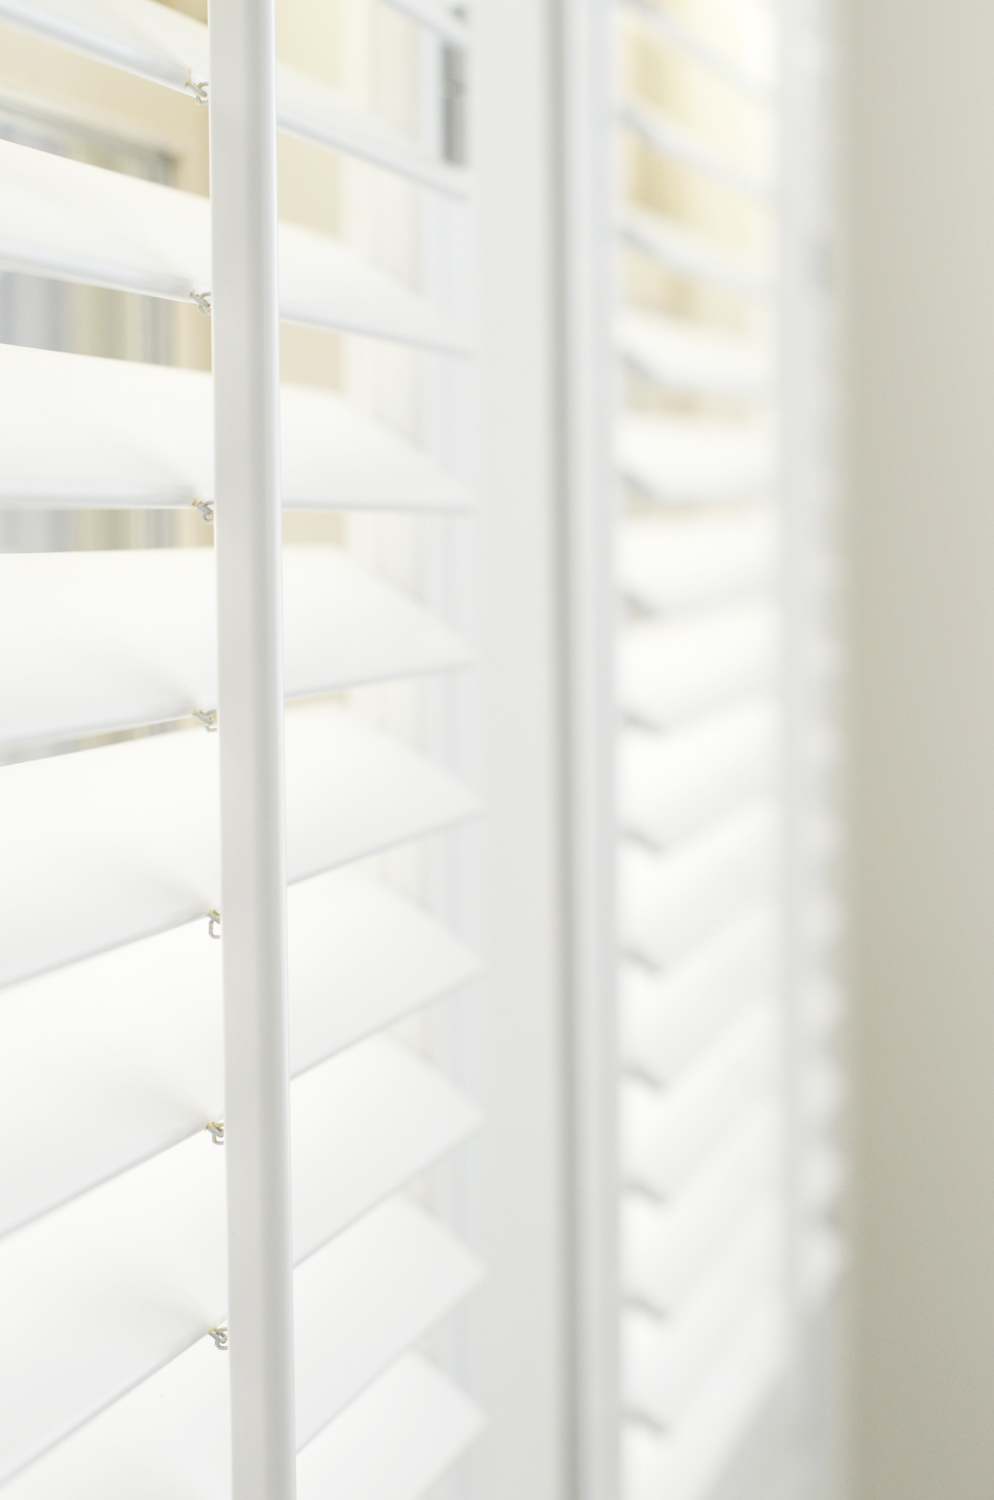 Shutters from blinds.com